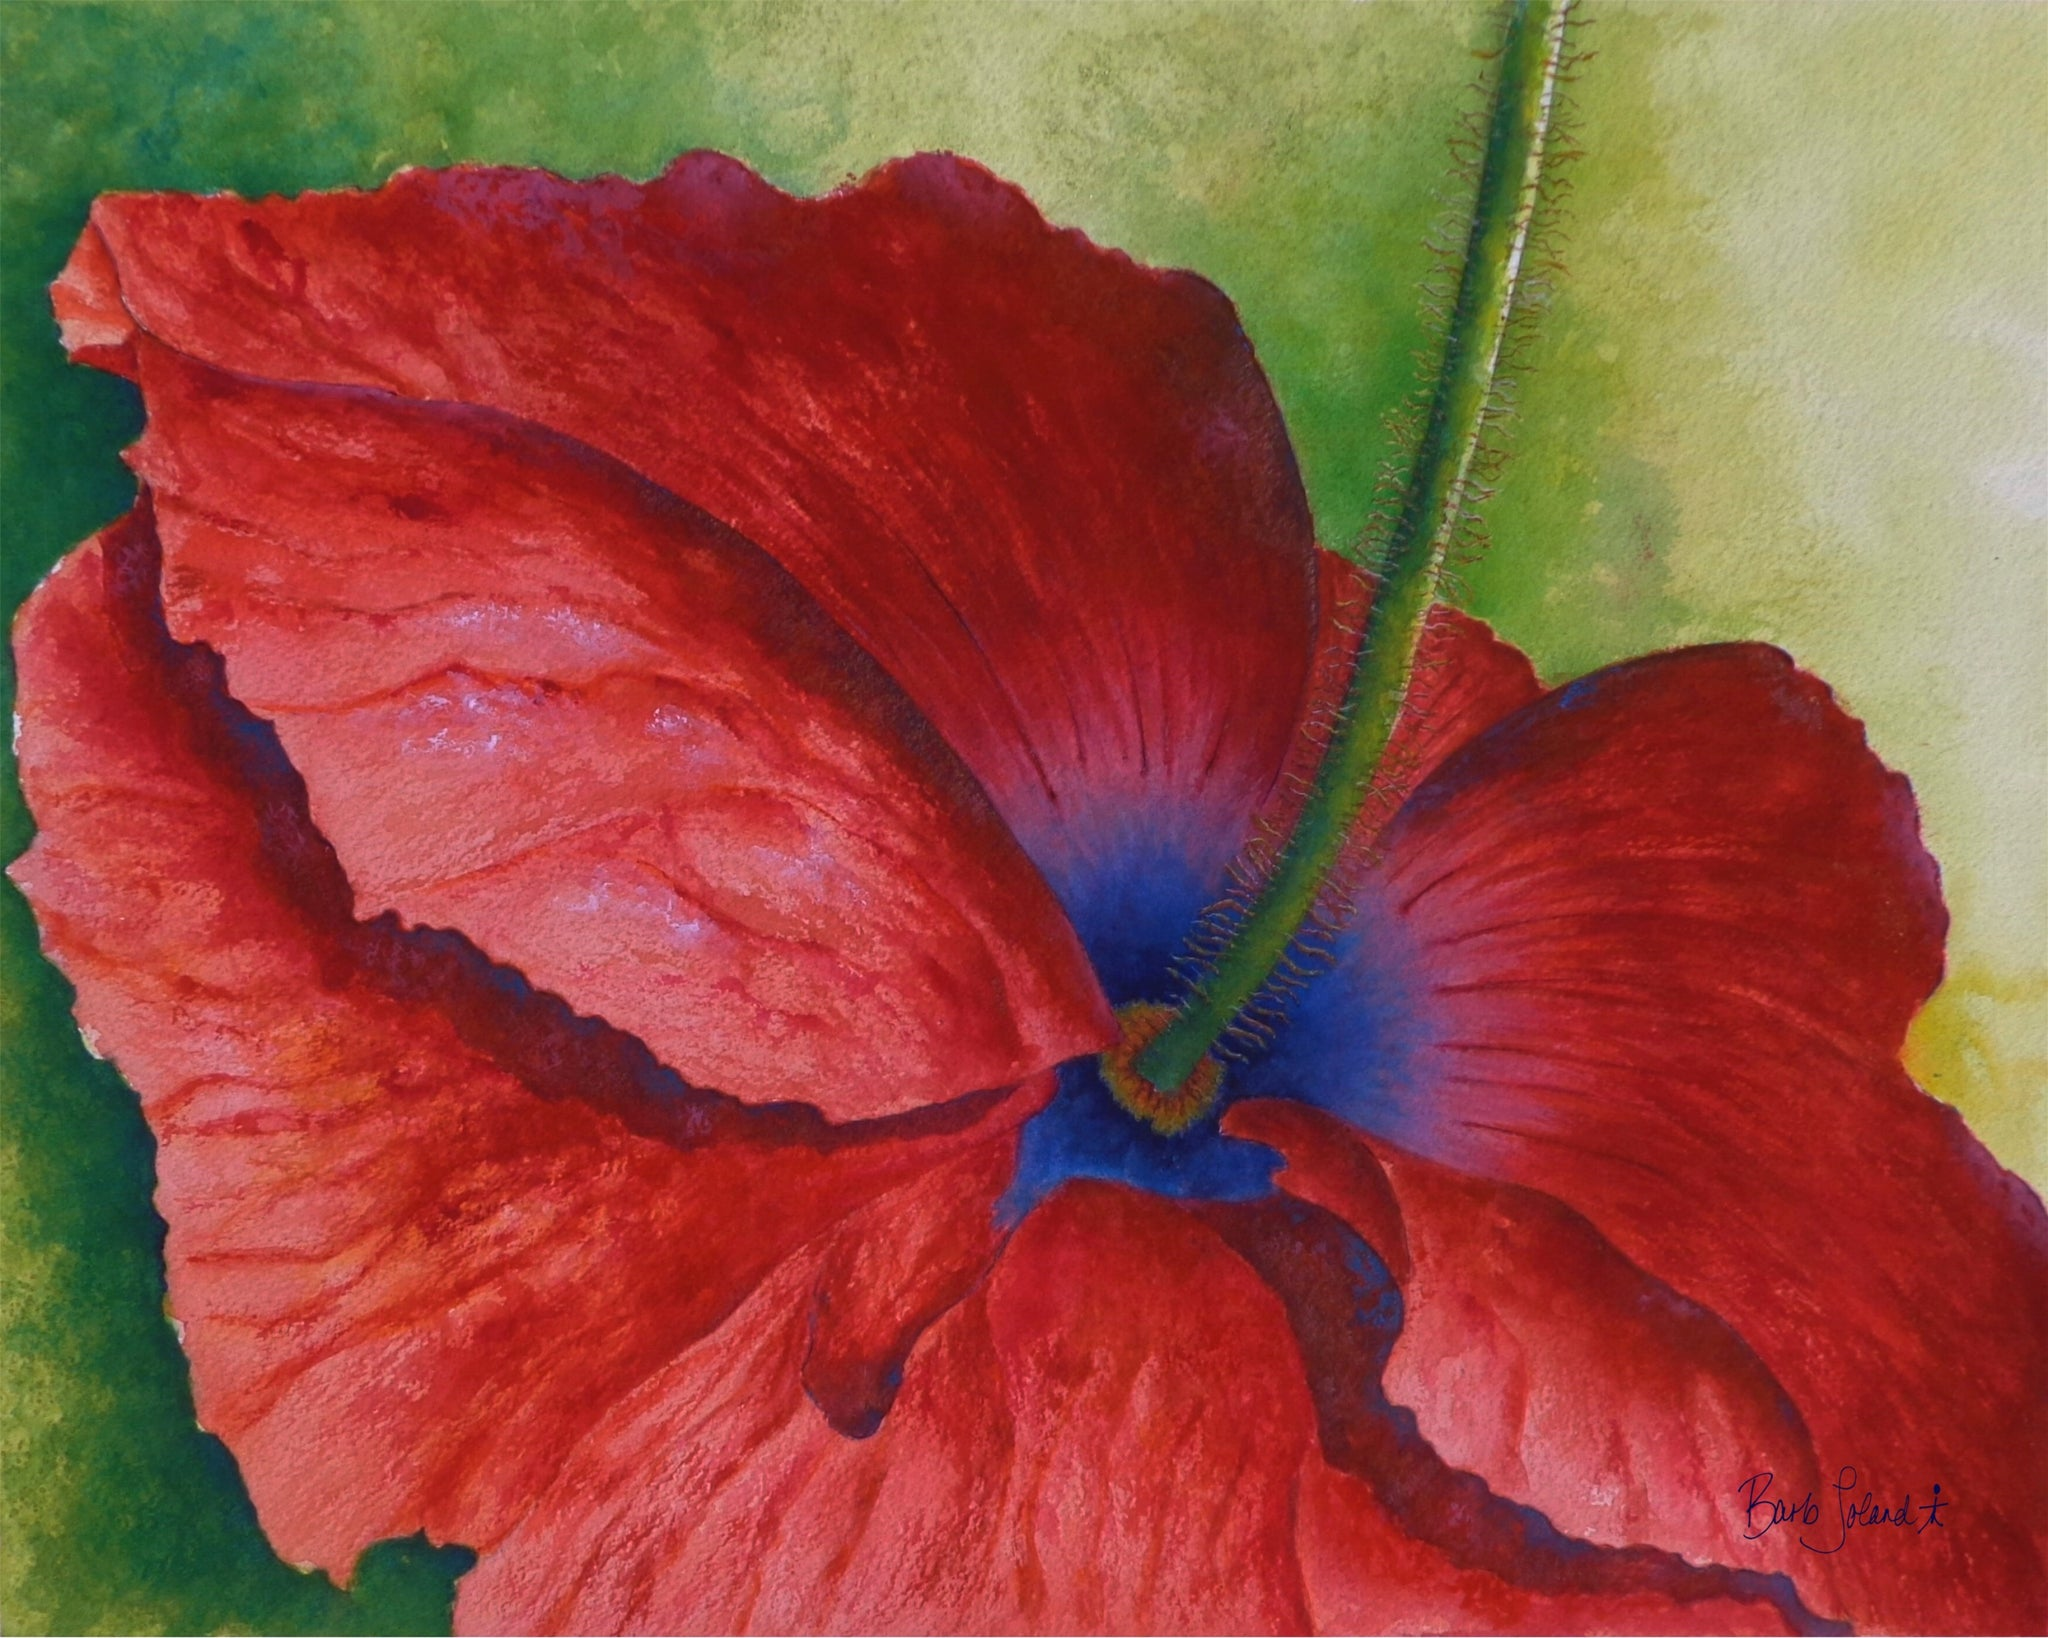 A watercolor painting of a bright red & blue poppy to personally enjoy for its beauty, or you may want to remember someone you love who served proudly in the armed forces.